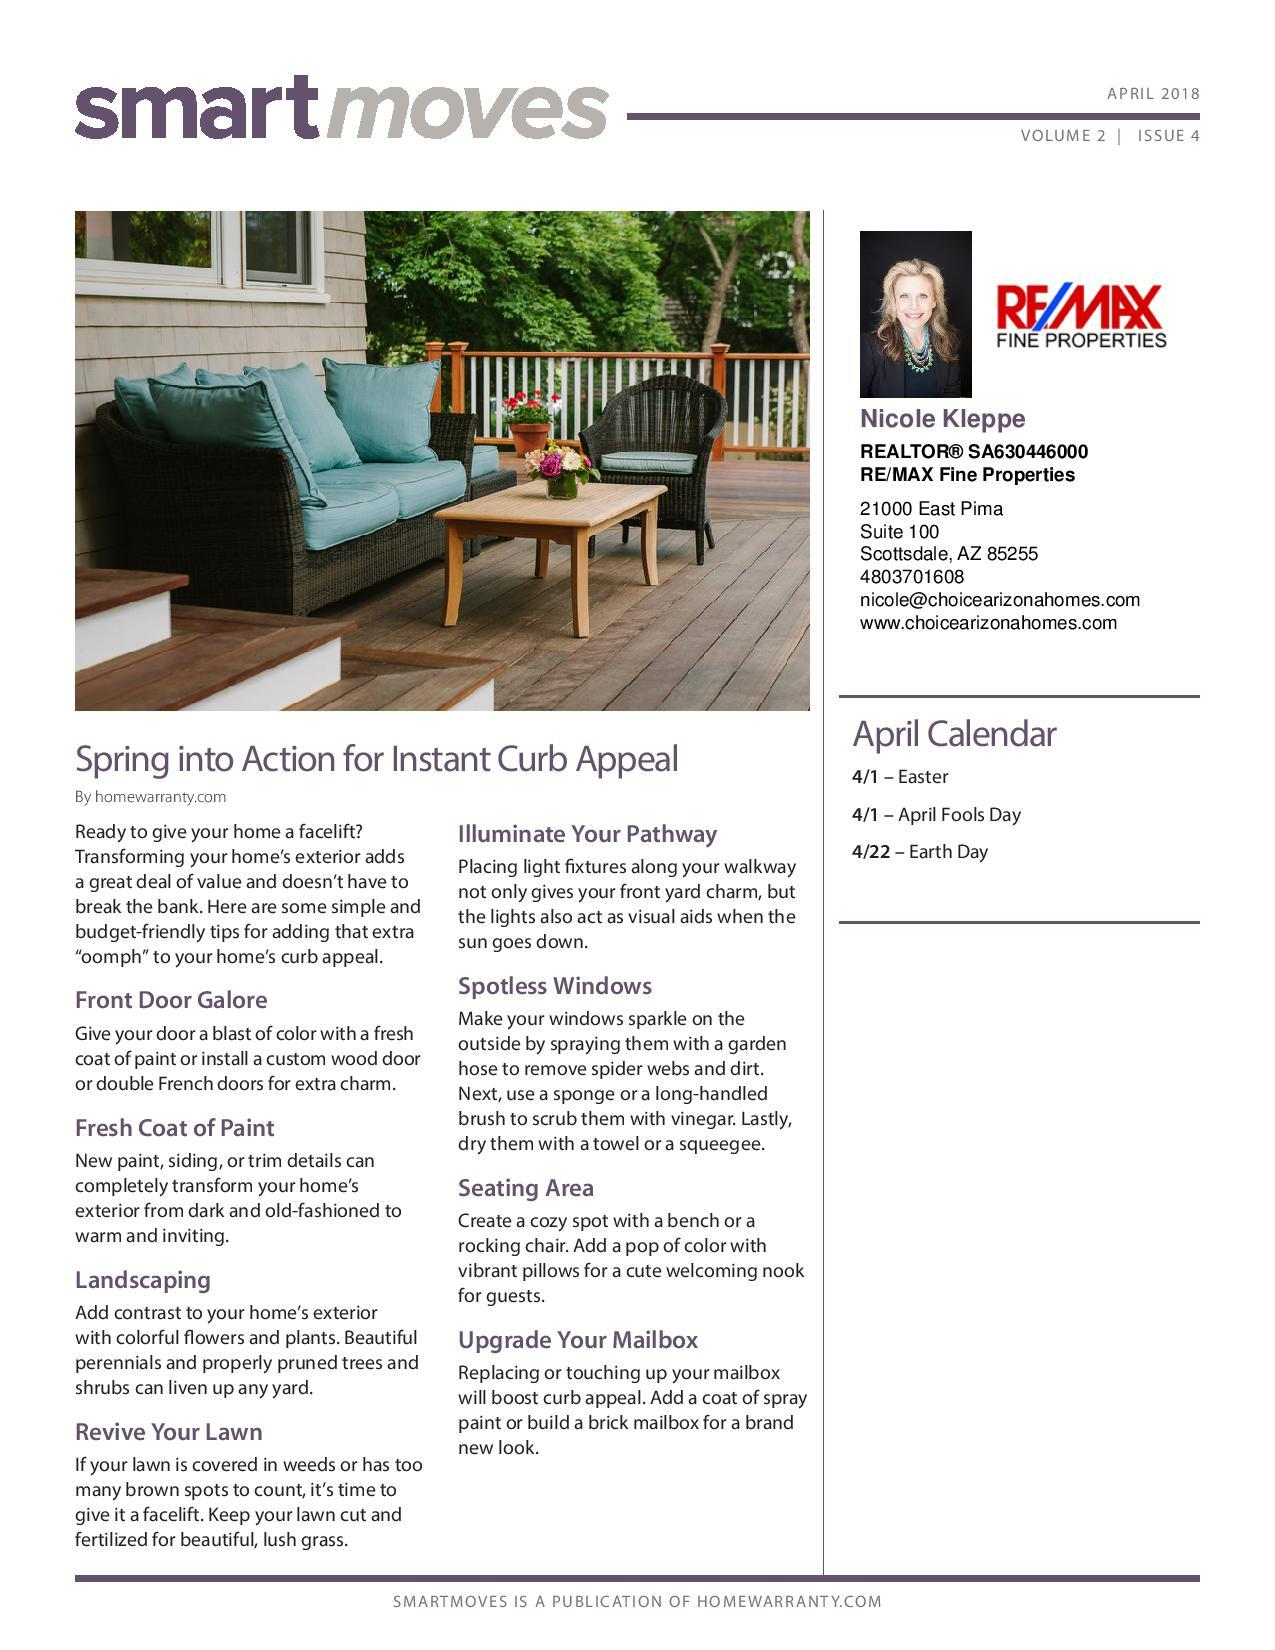 April 2018 Real Estate Newsletter page 1